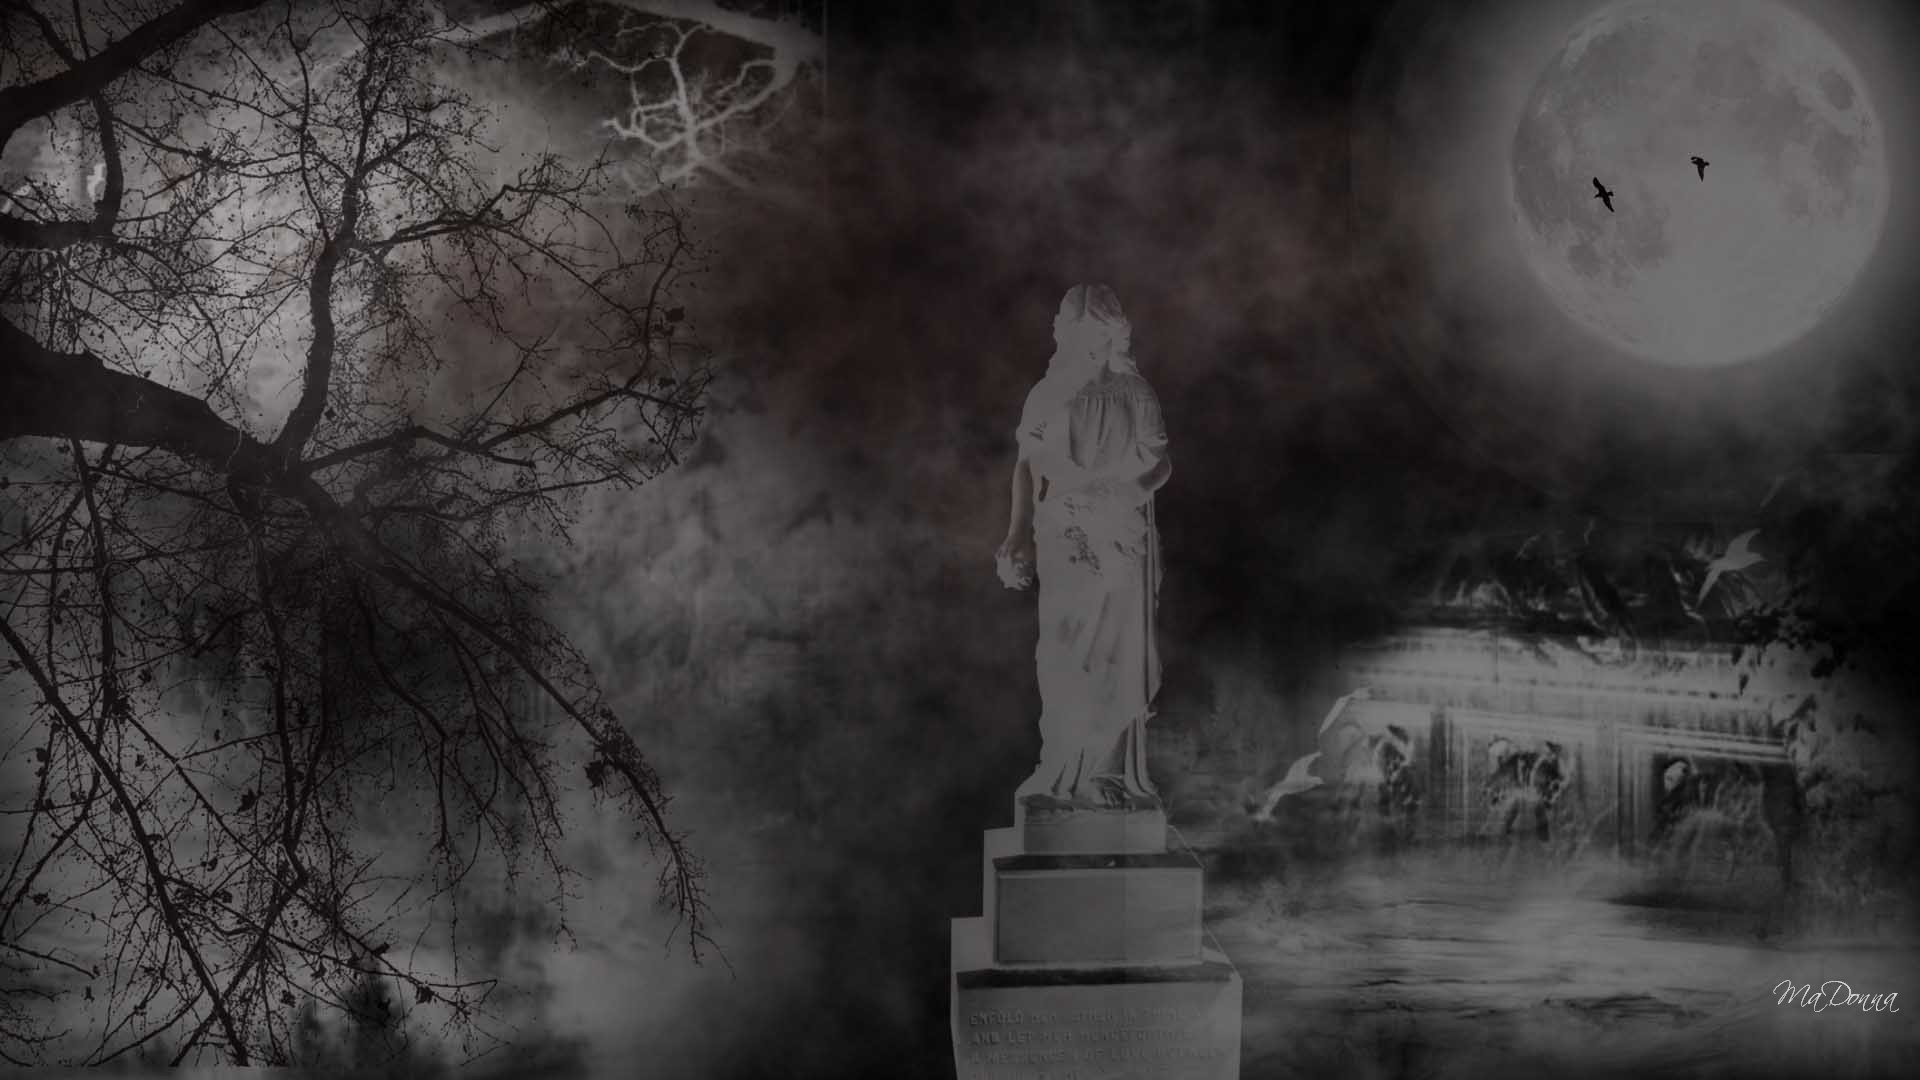 Creepy Graveyard Wallpaper - WallpaperSafari